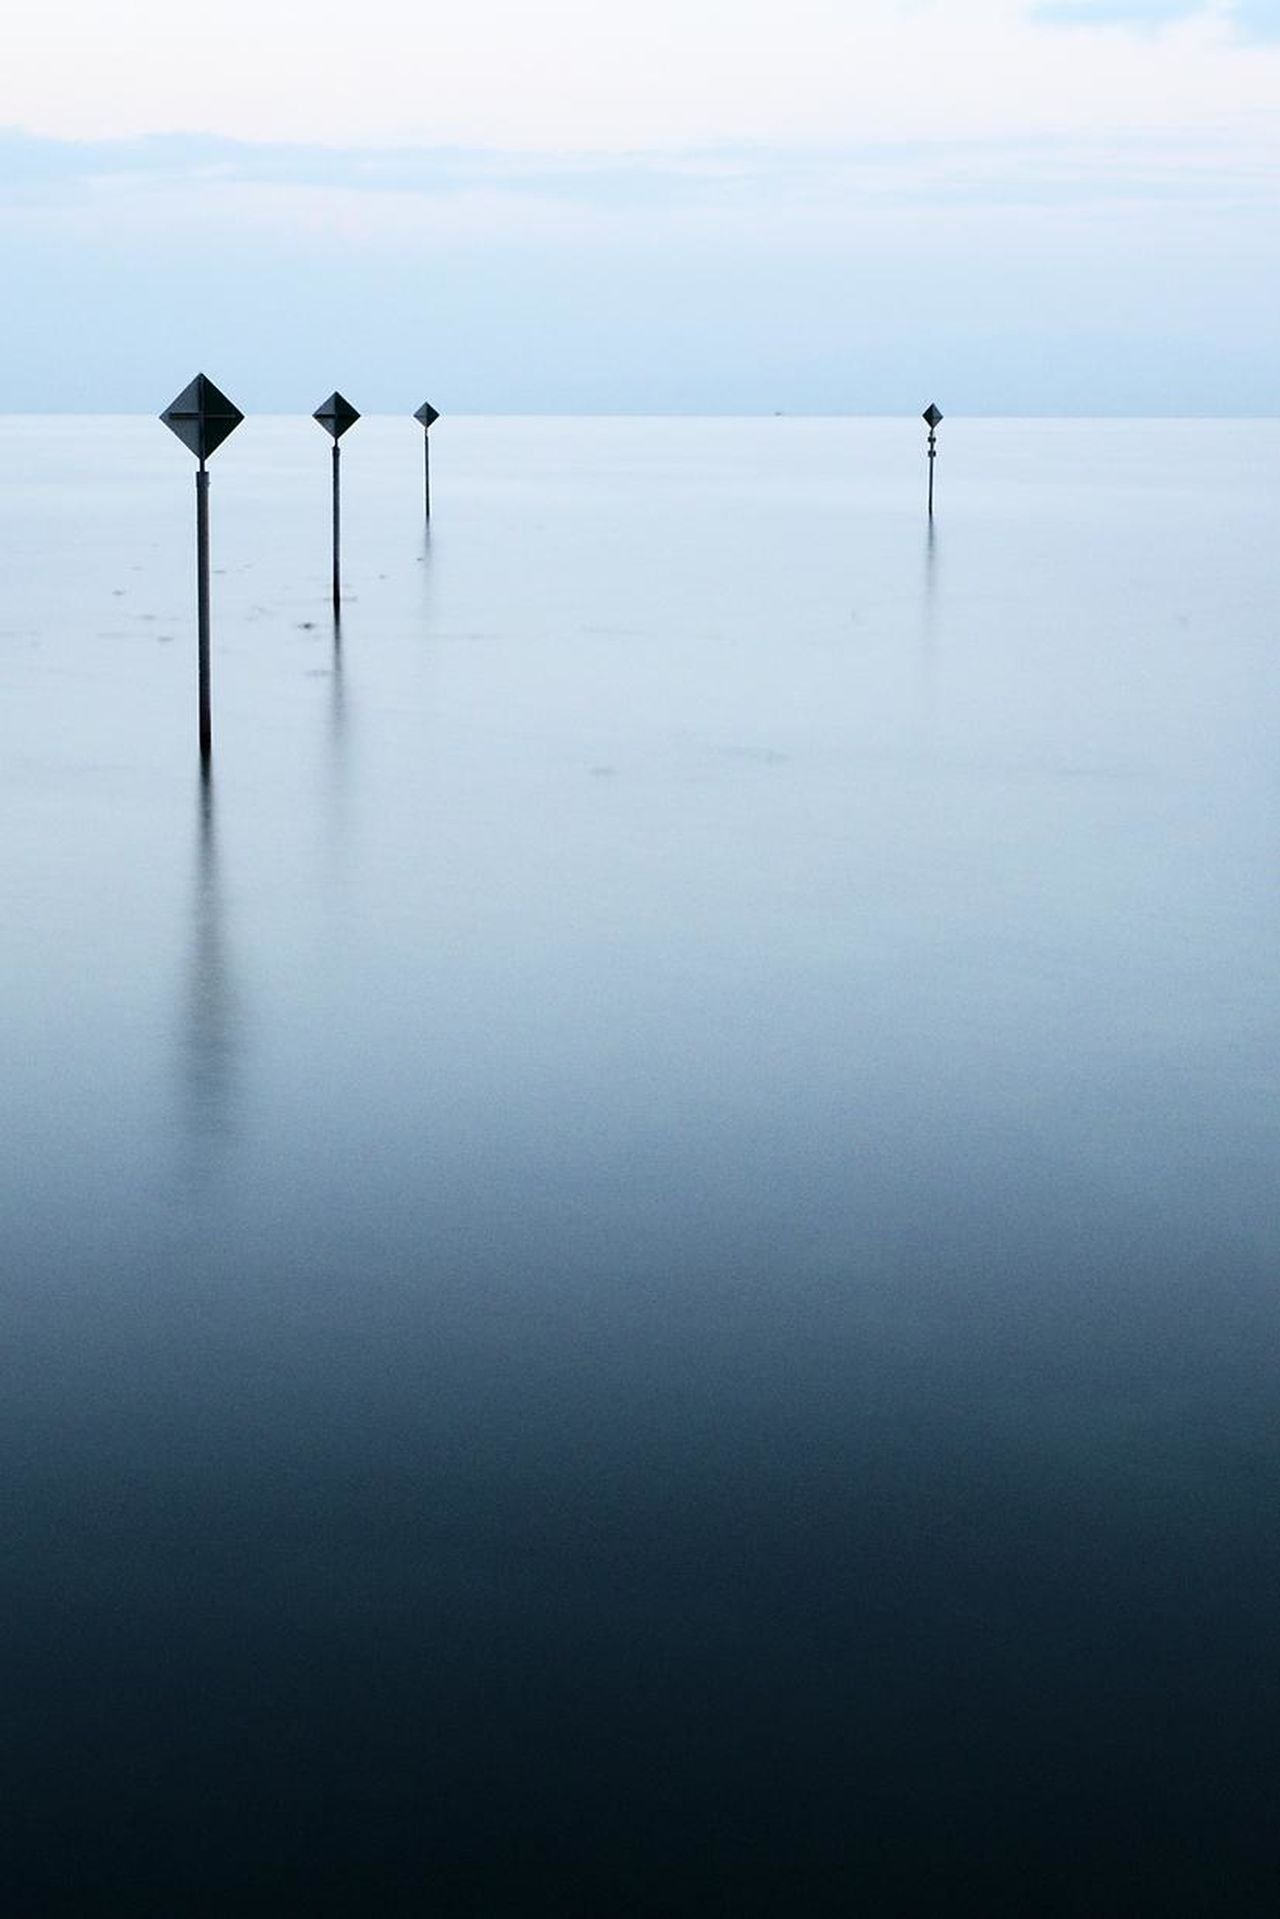 Adult Beauty In Nature Business Day Horizon Over Water Horizontal Lake LINELangzeitaufnahme Long Exposure Longexposure Minimalism Moments Monotone Nature Outdoors People Point Of View Reflection Reflections In The Water Sea Marks Simple Simplicity Water First Eyeem Photo